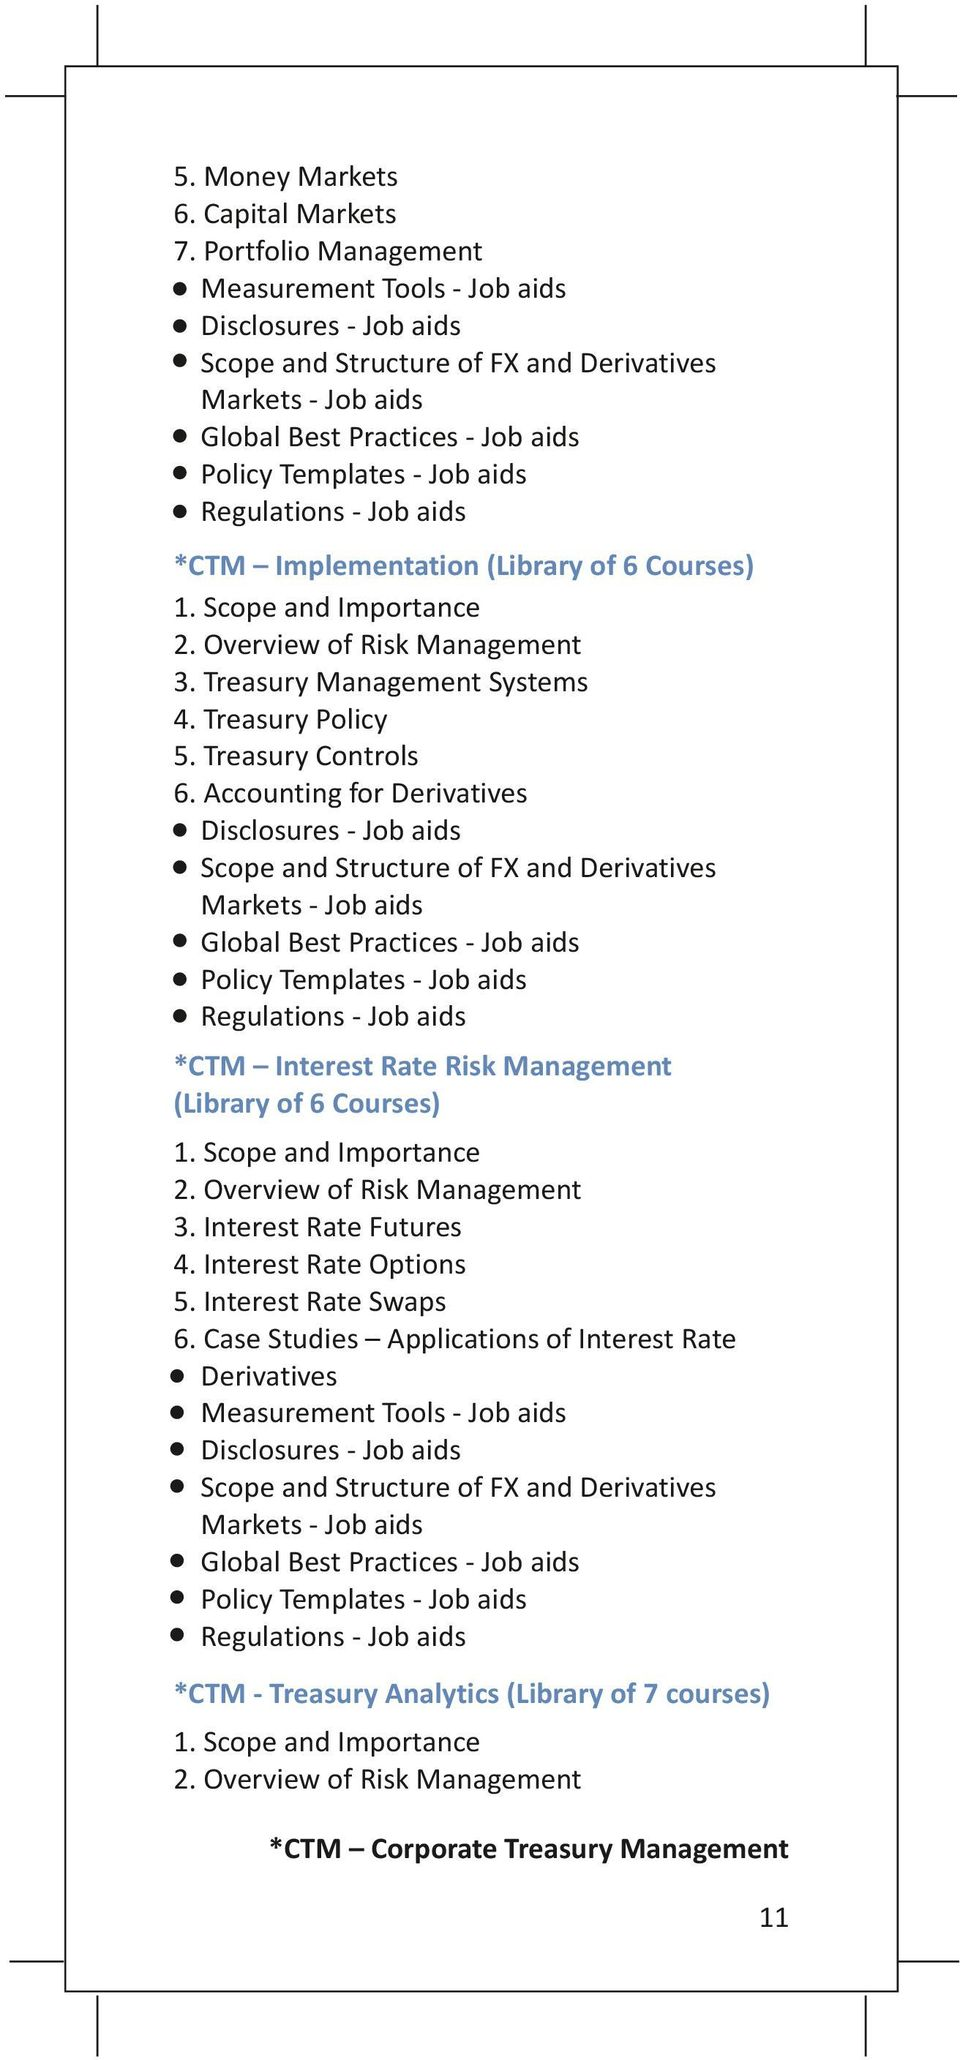 Regulations - Job aids *CTM Implementation (Library of 6 Courses) 1. Scope and Importance 2. Overview of Risk Management 3. Treasury Management Systems 4. Treasury Policy 5. Treasury Controls 6.